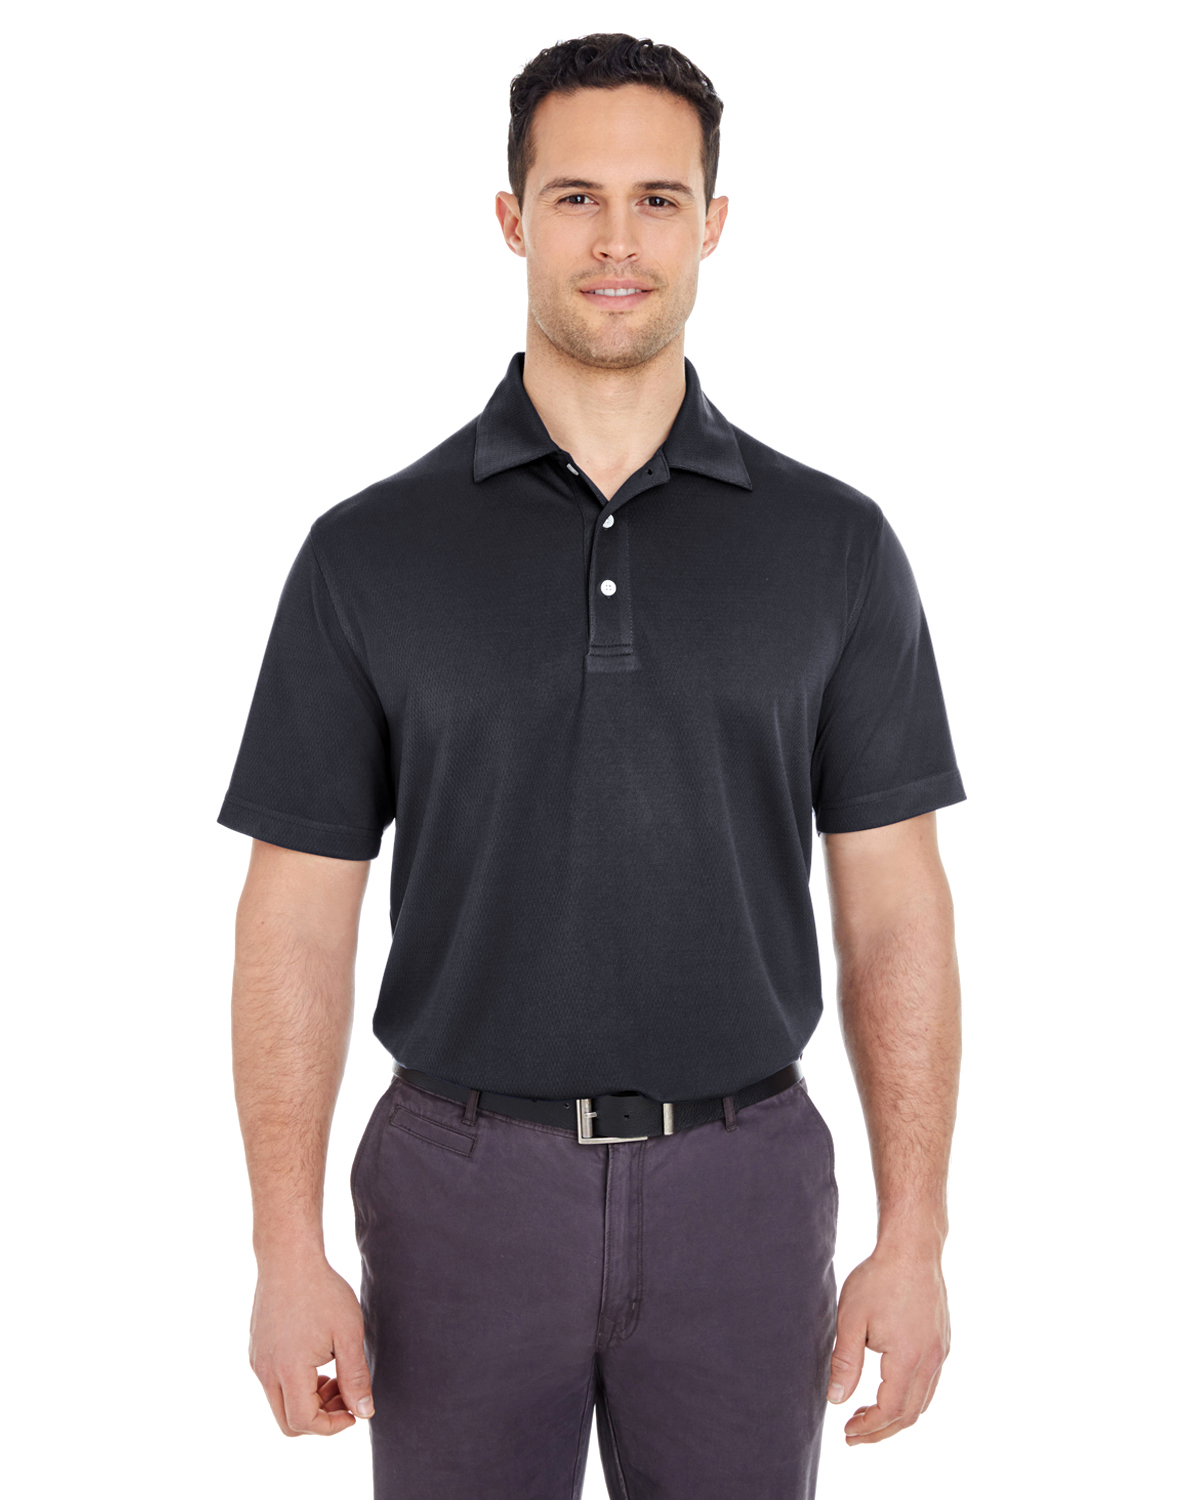 Men's Platinum Performance Jacquard Polo withTempControl Technology